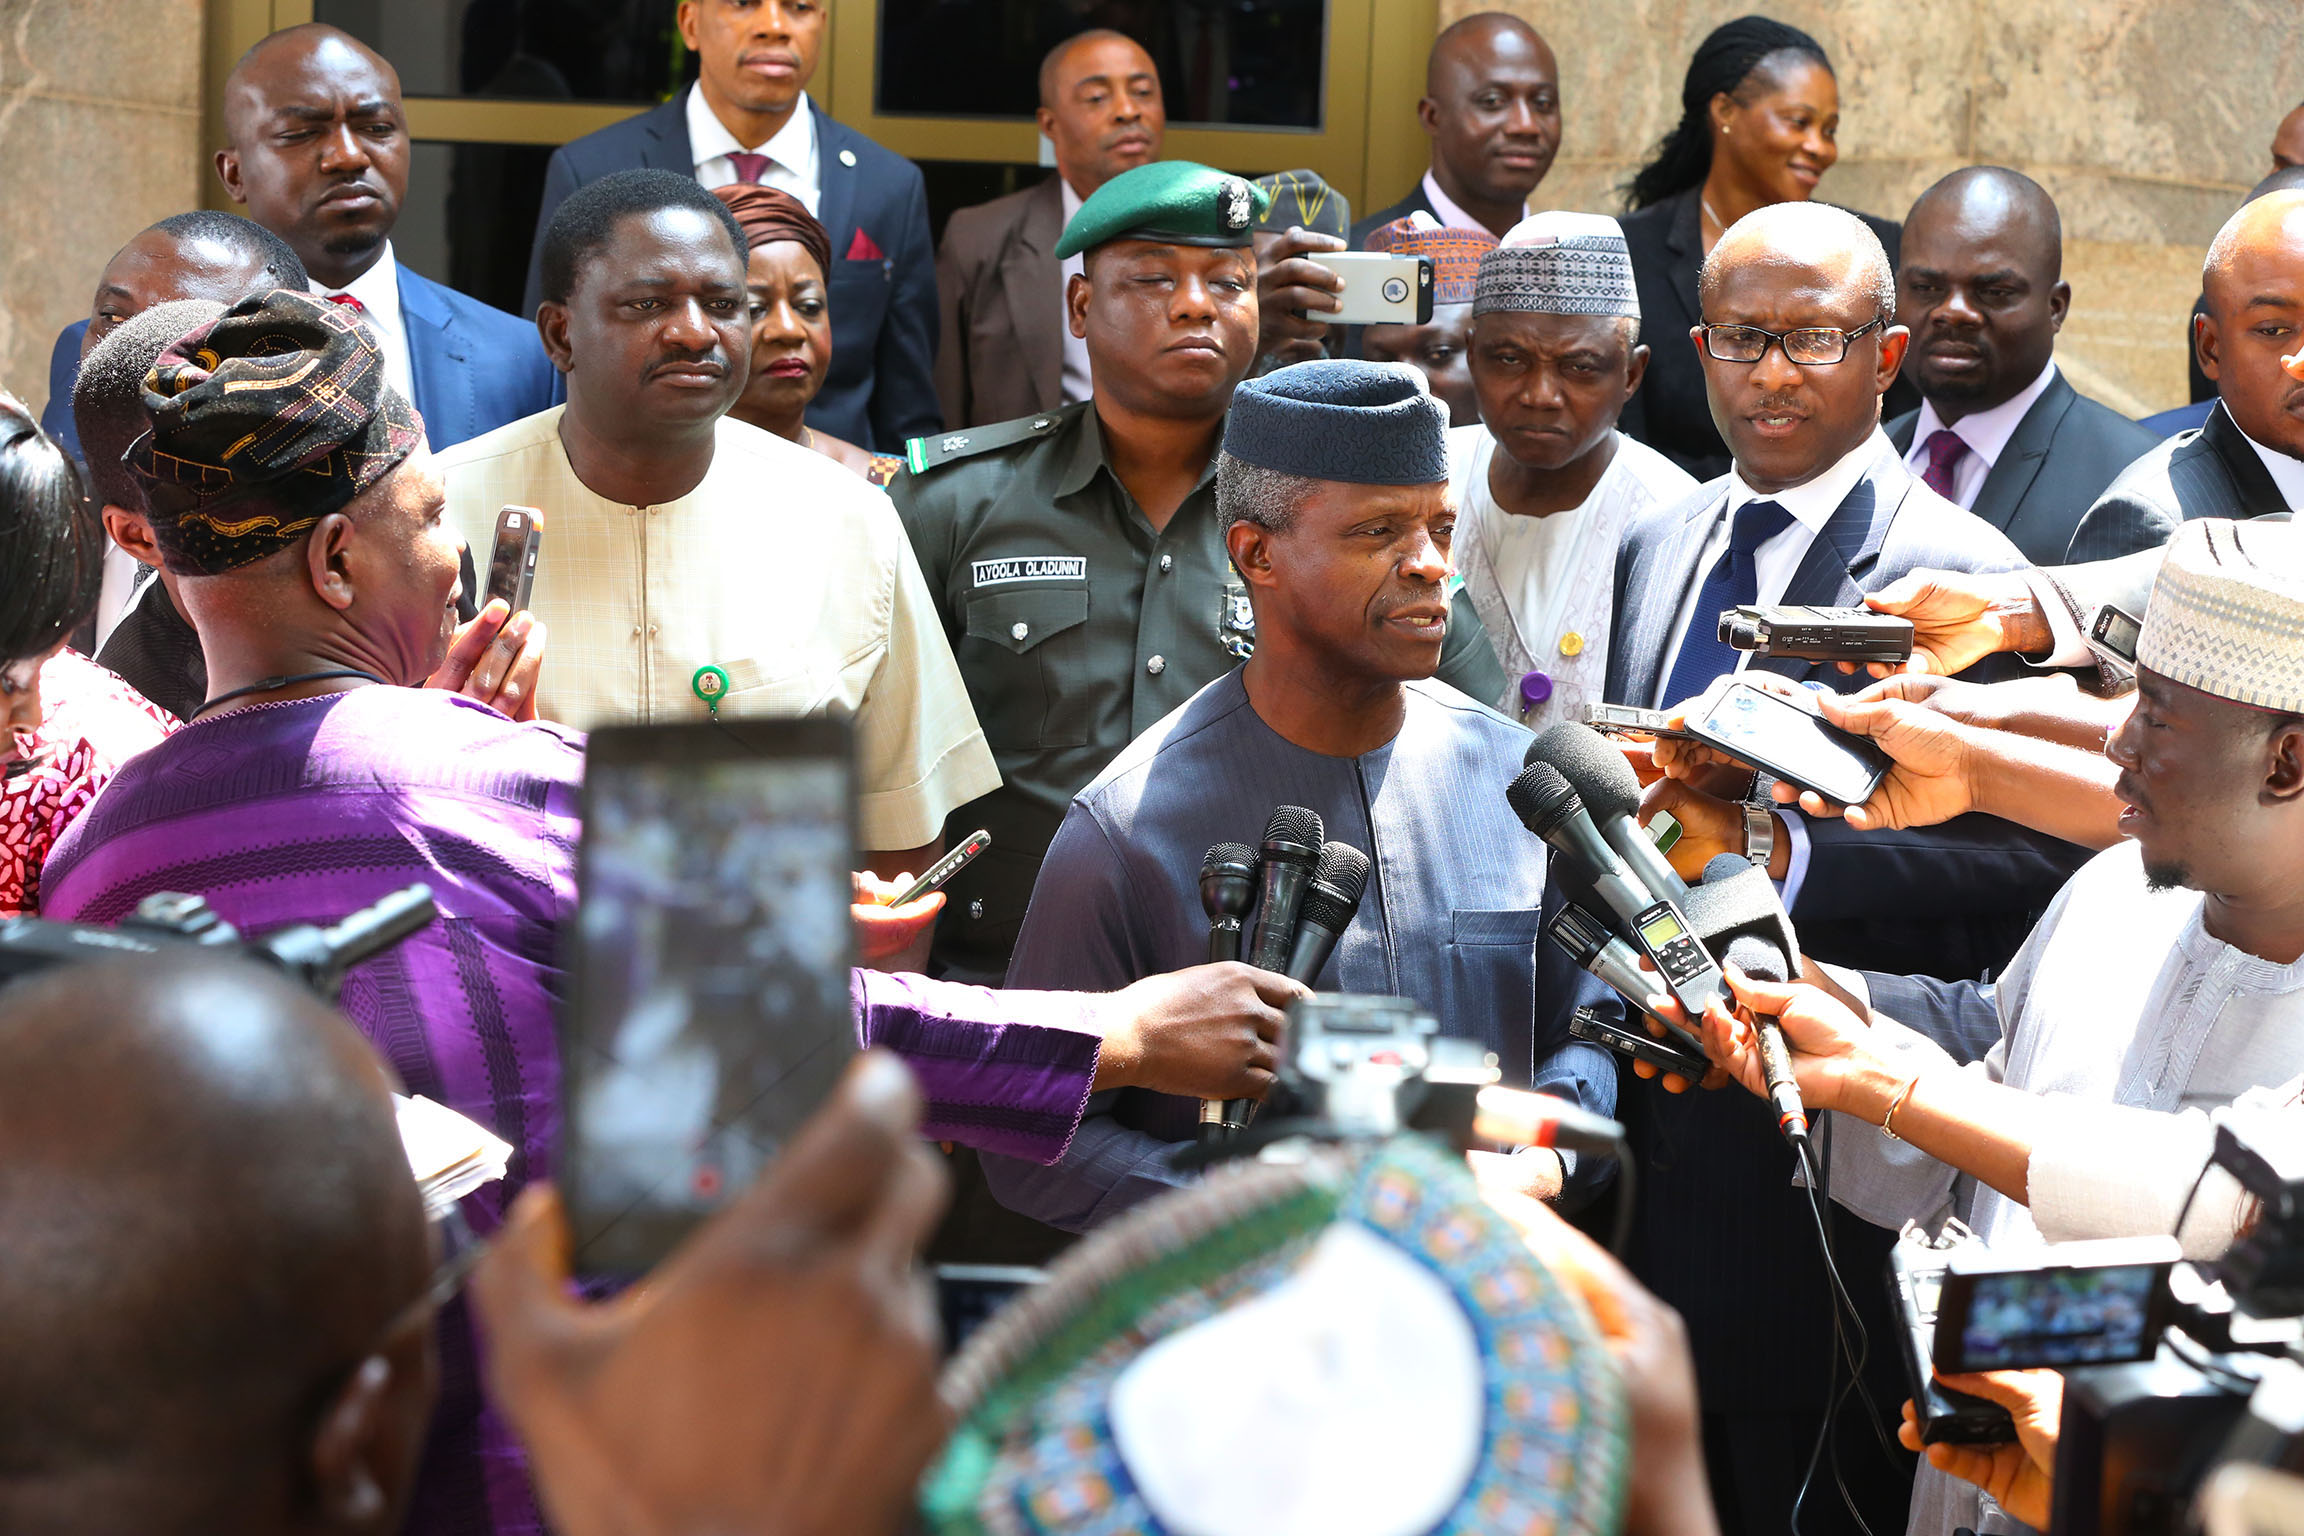 AG PRESIDENT OSINBAJO PRESIDES OVER FEC 0A&B. Acting President Yemi Osinbajo brief State House Press on his visit to the President Muhammadu Buhari in London before the Federal Executive Council Meeting at the State House in Abuja. PHOTO; SUNDAY AGHAEZE/STATE HOUSE. JULY 12 2017